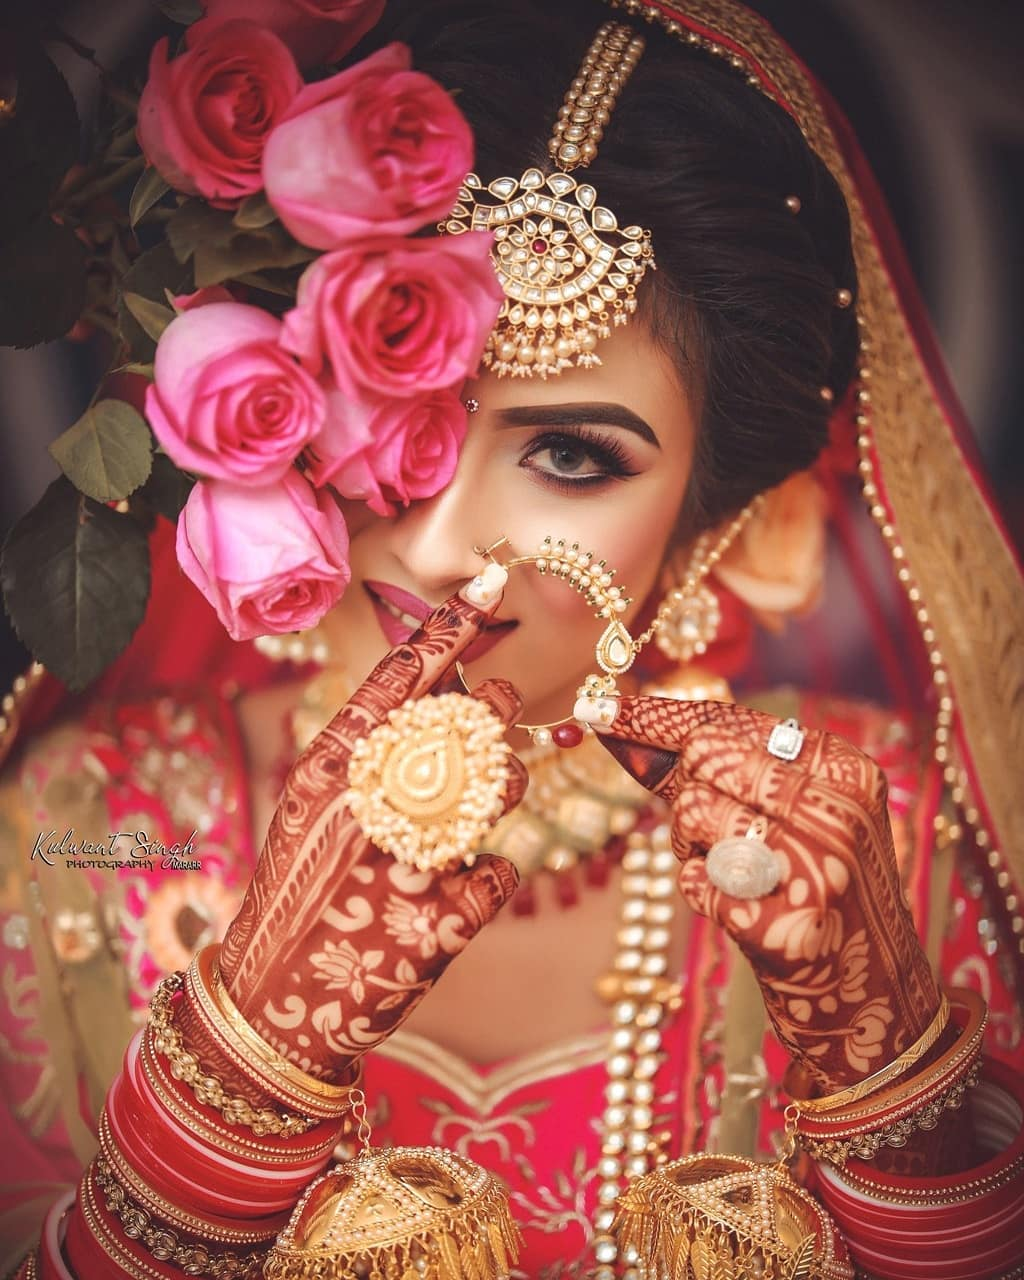 Polki bridal set: Indian Makeup and Jewelry Ideas Inspired from Real Brides